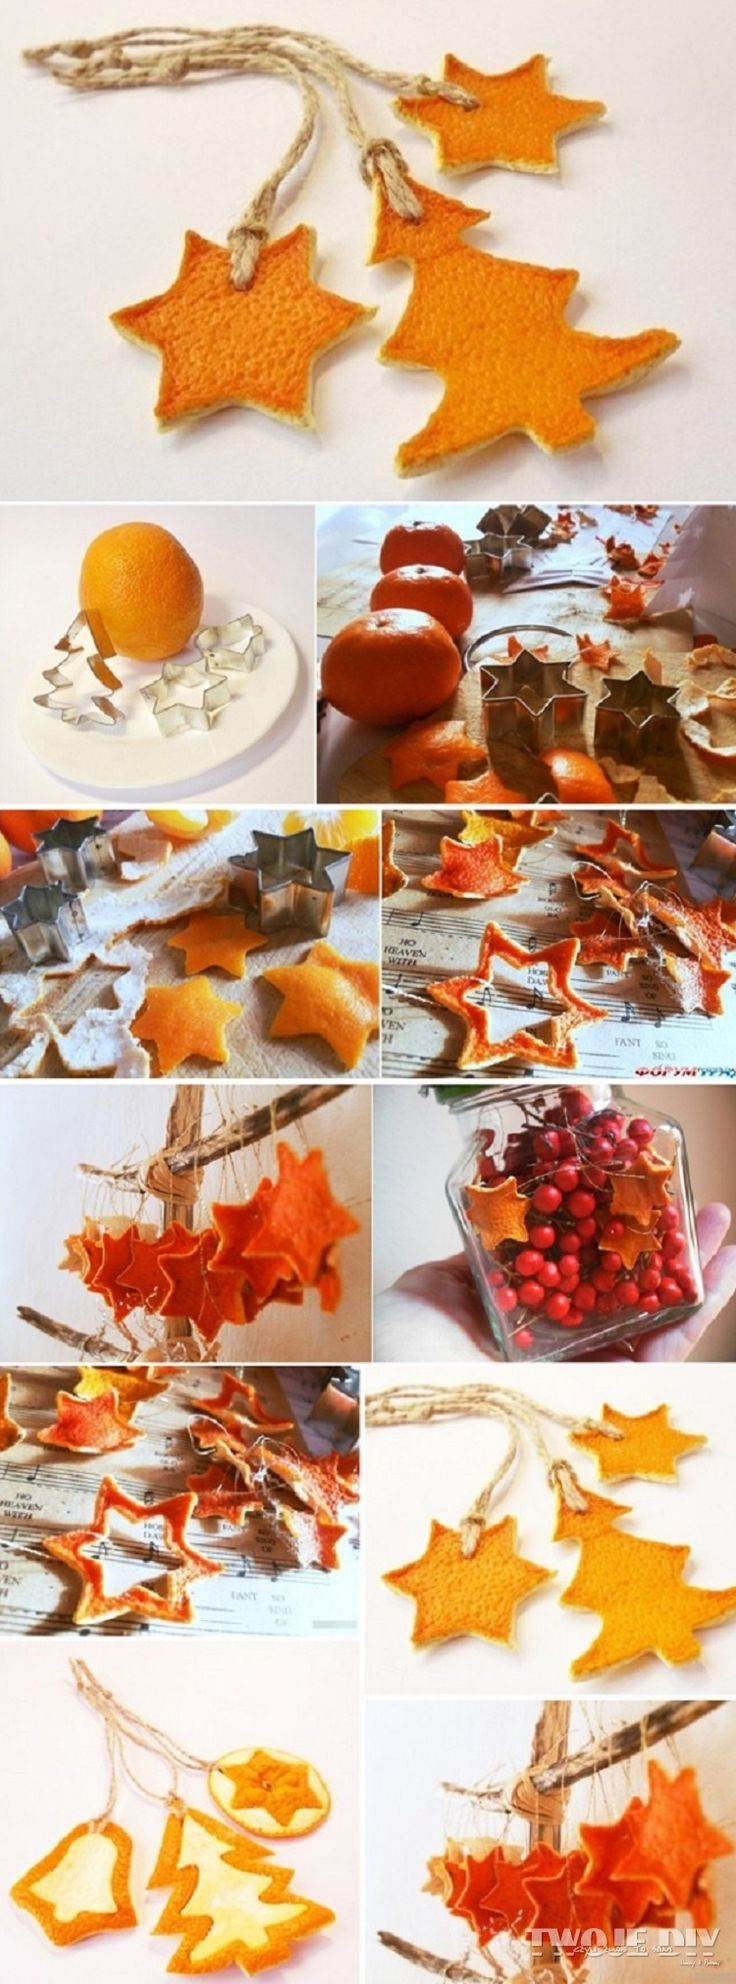 Craft using orange peels. Das ist mal ne simple Idee. Duftet und schmückt…